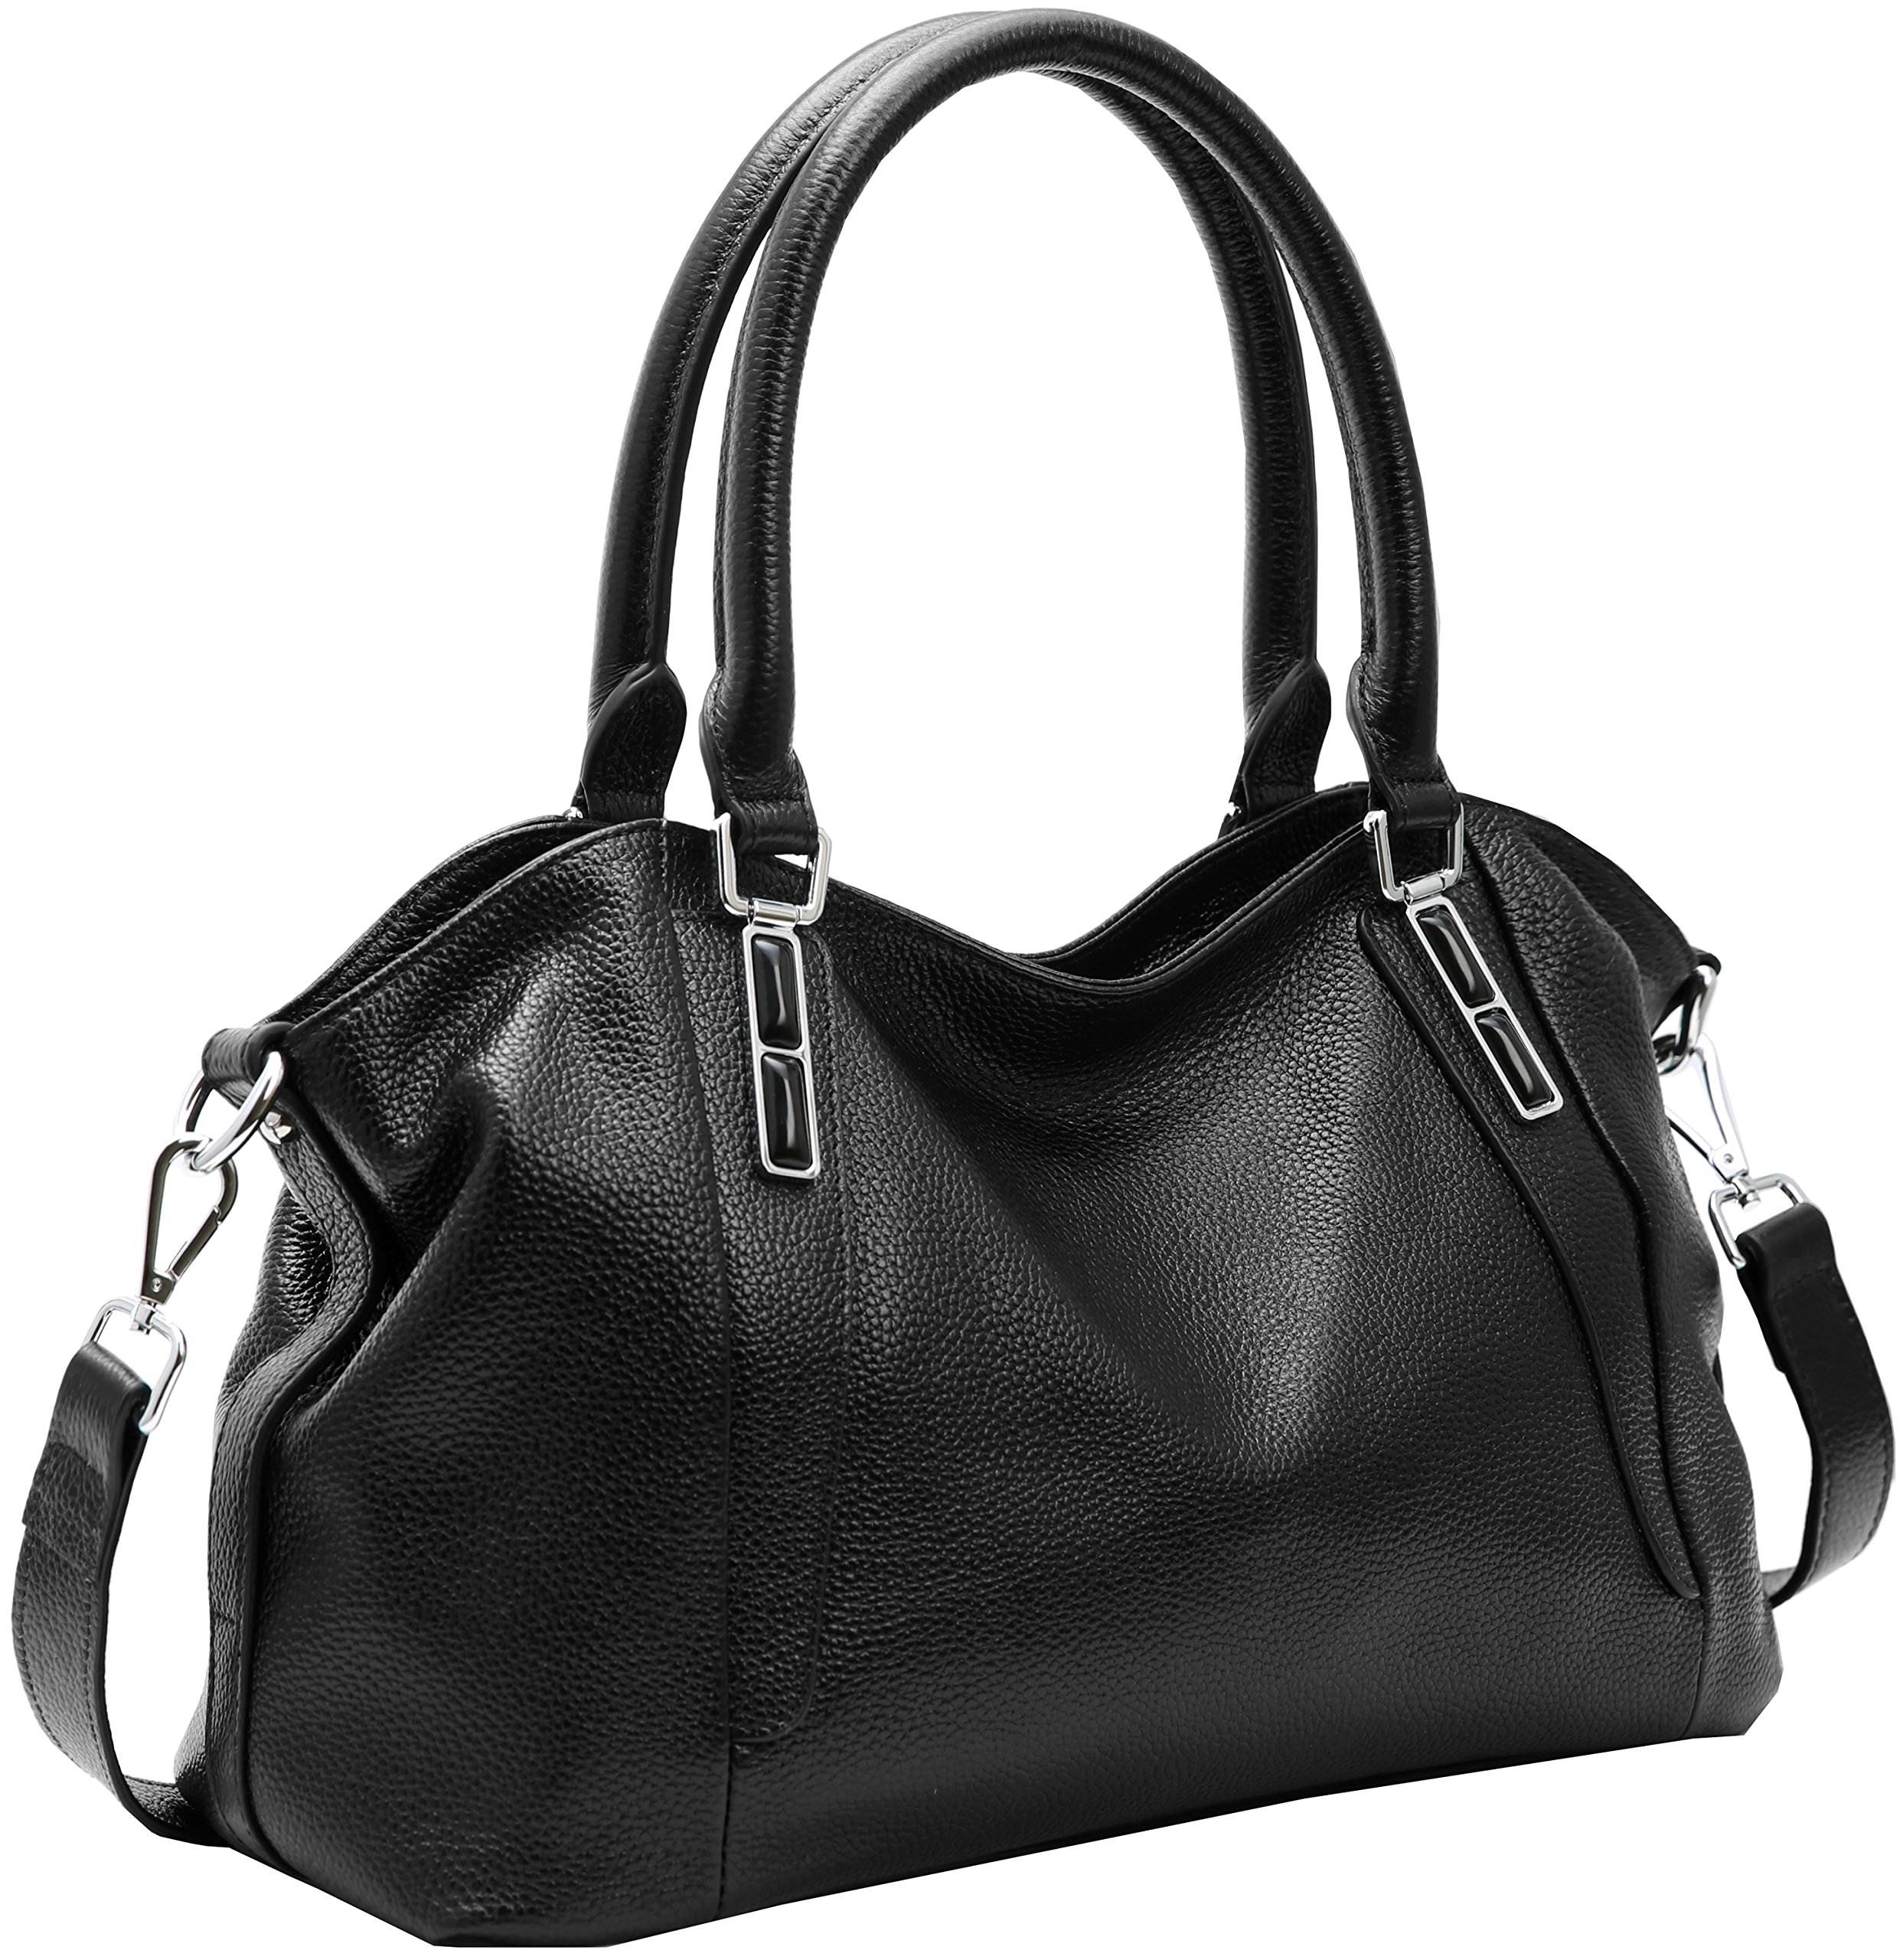 Iswee Leather Shoulder Bag Tote Top Hanldle Handbag Satchel Cross Body Purses for Women on Clearance (Black)